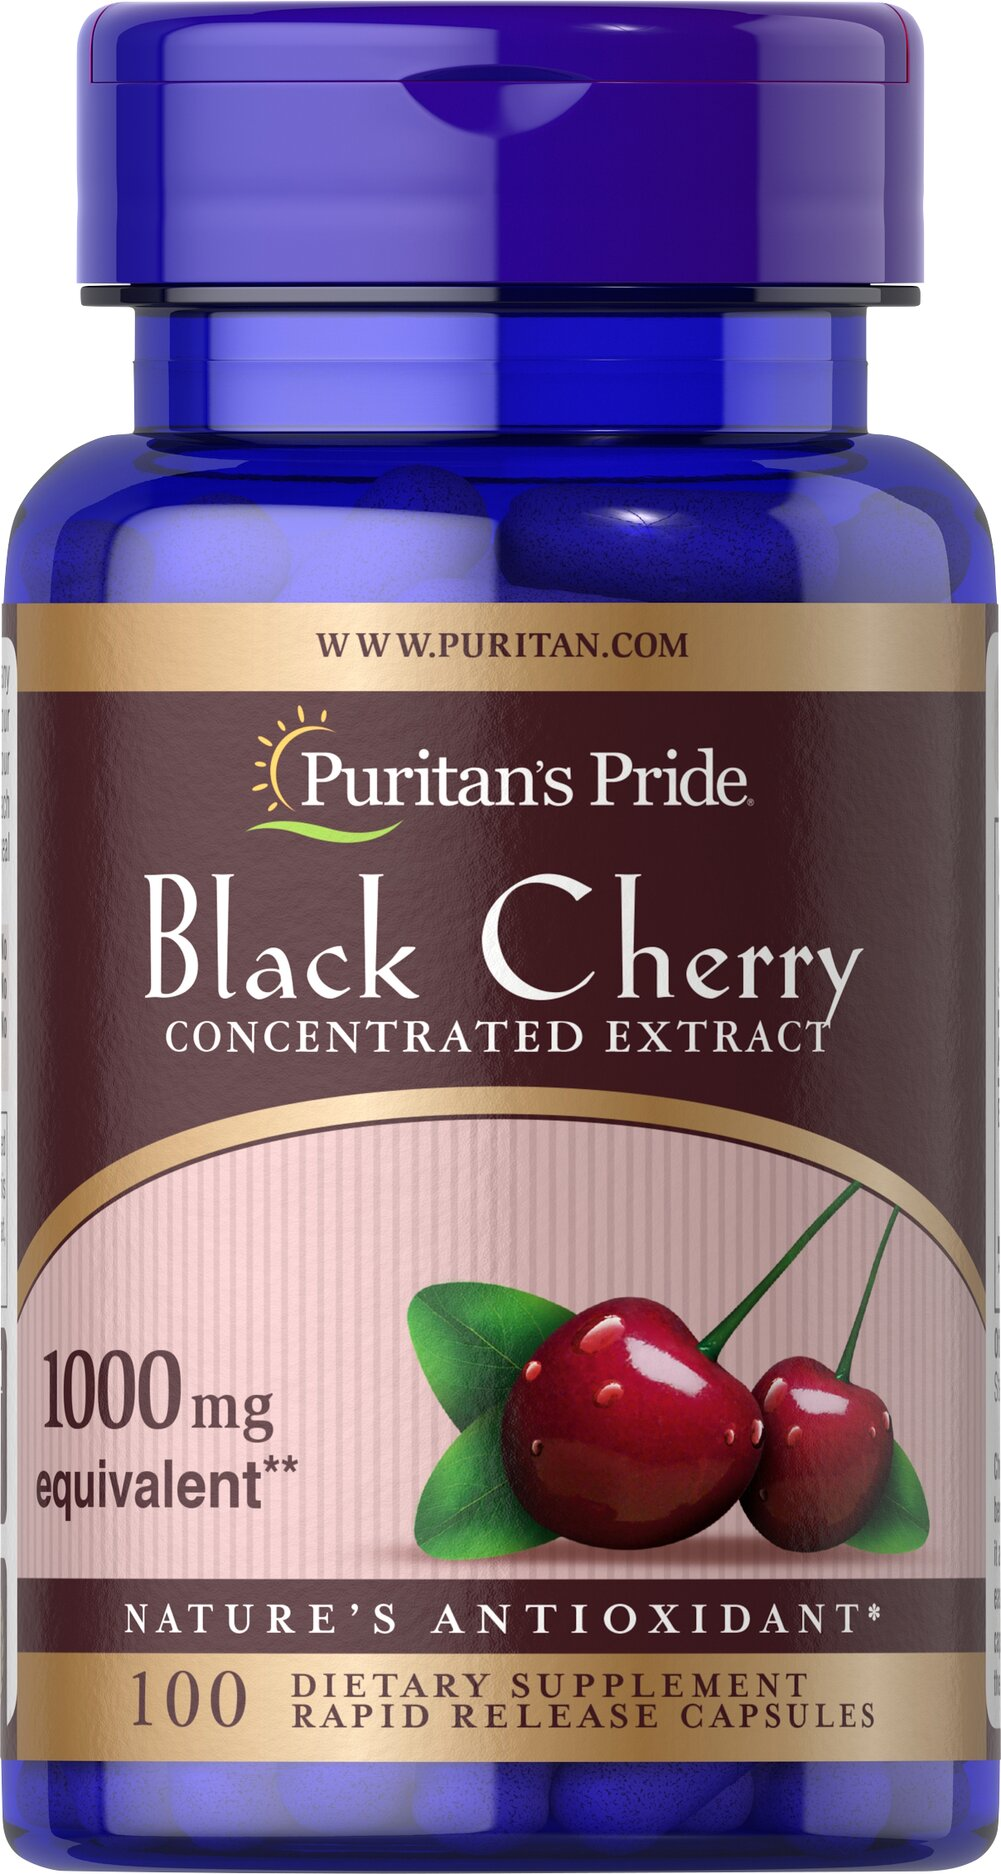 Black Cherry 1000 mg <p>Cherries are known for their natural content of antioxidants and other beneficial components. Black Cherry's beneficial compounds help to give it a rich, dark color that is bursting with nutritional goodness. Now you can easily obtain the benefits of Black Cherry in our convenient Black Cherry capsules. Each serving contains a 4:1 extract of Black Cherry to help retain the most important constituents.</p> 100 Capsules 1000 mg $10.99